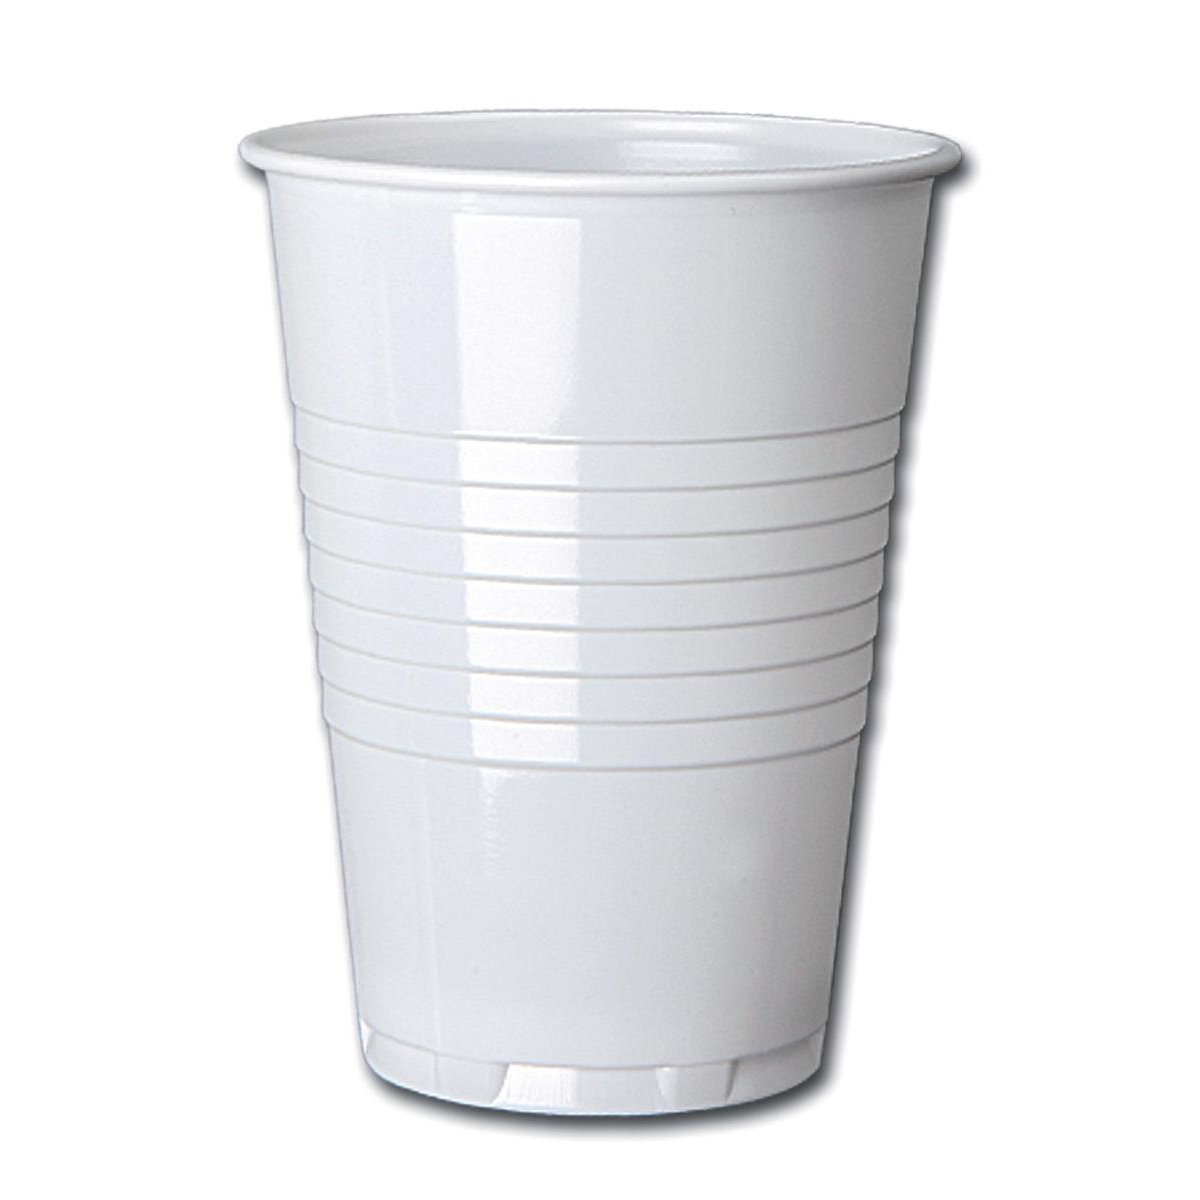 Cup for Hot Drinks Plastic for Vending Machine 7oz 207ml Tall Pack 100